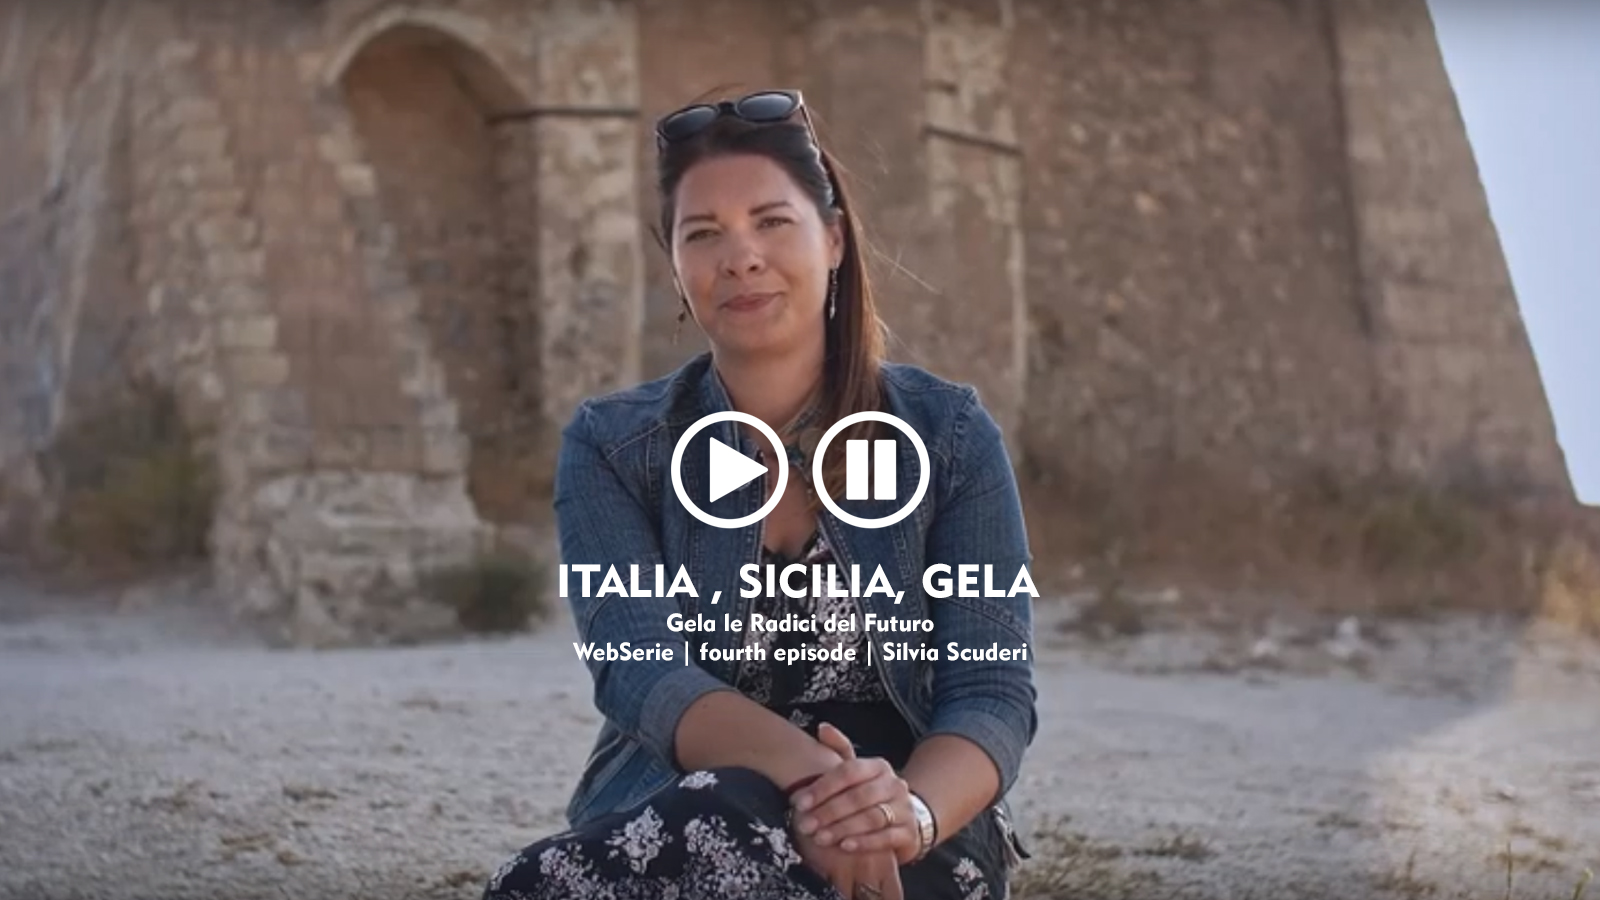 webserie | italia, sicilia, gela | fourth episode | silvia